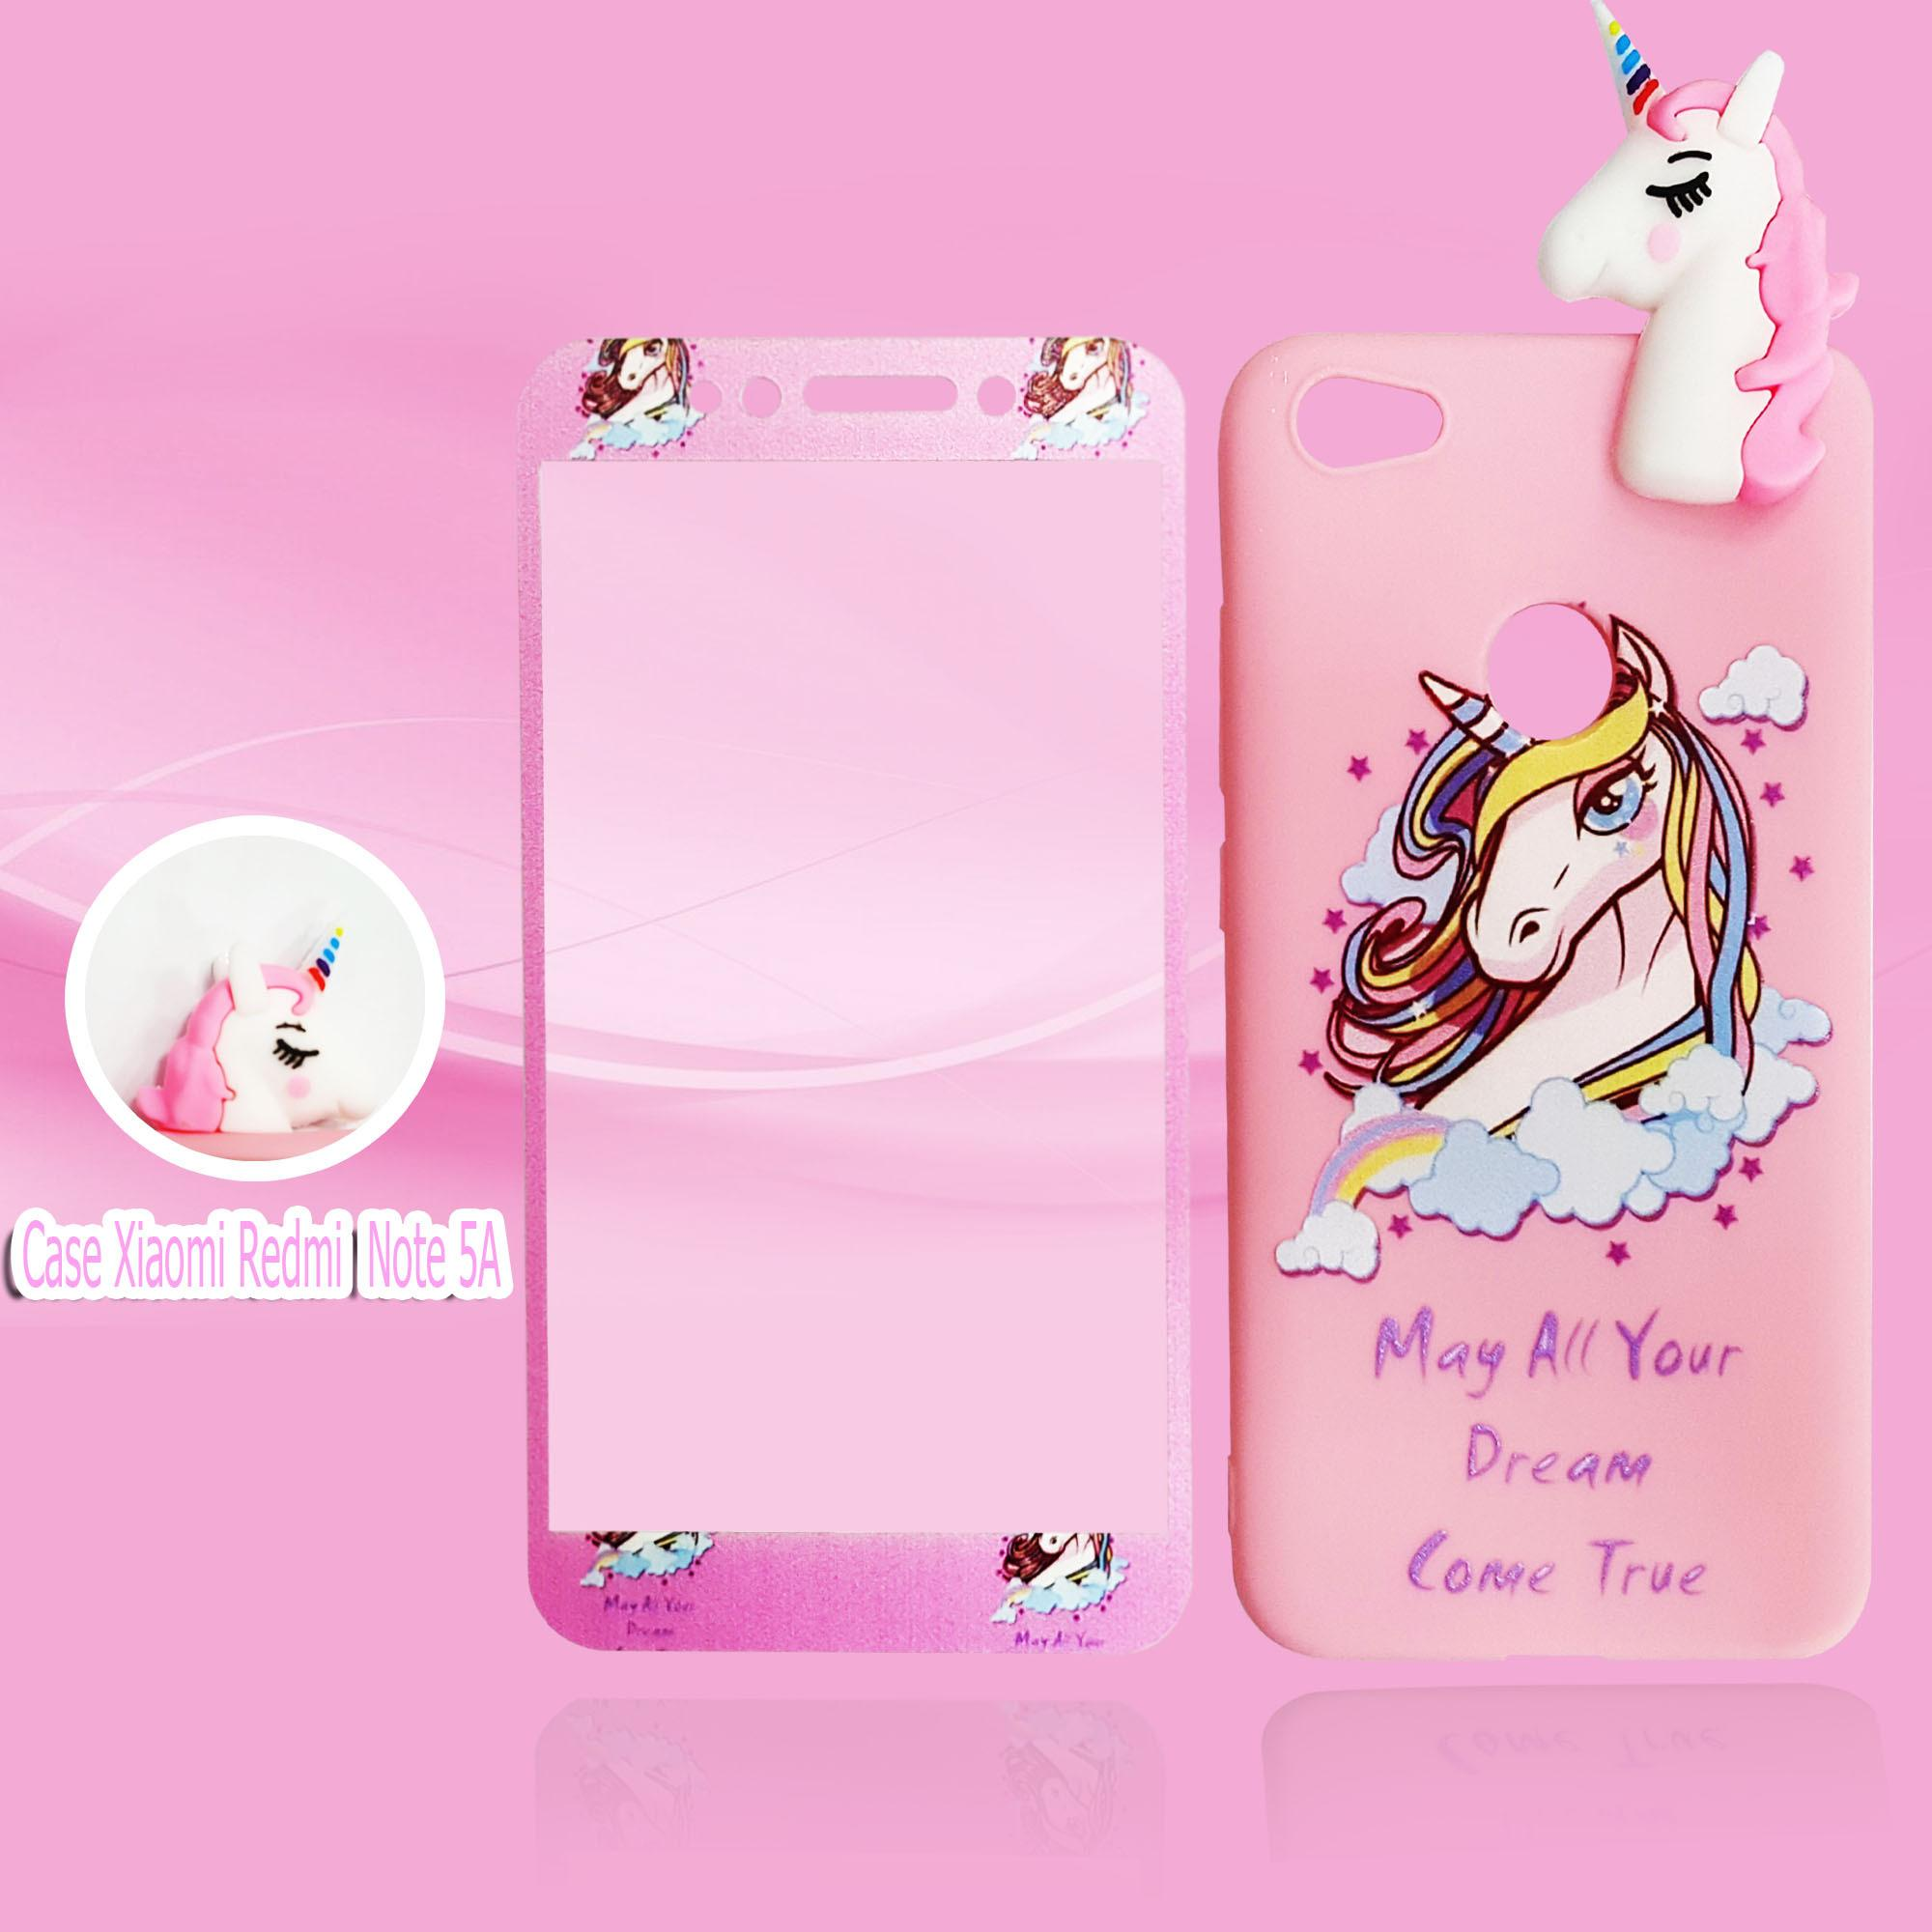 Marintri Case Xiaomi Redmi Note 5A With Tempered Glass Unicorn Manjat